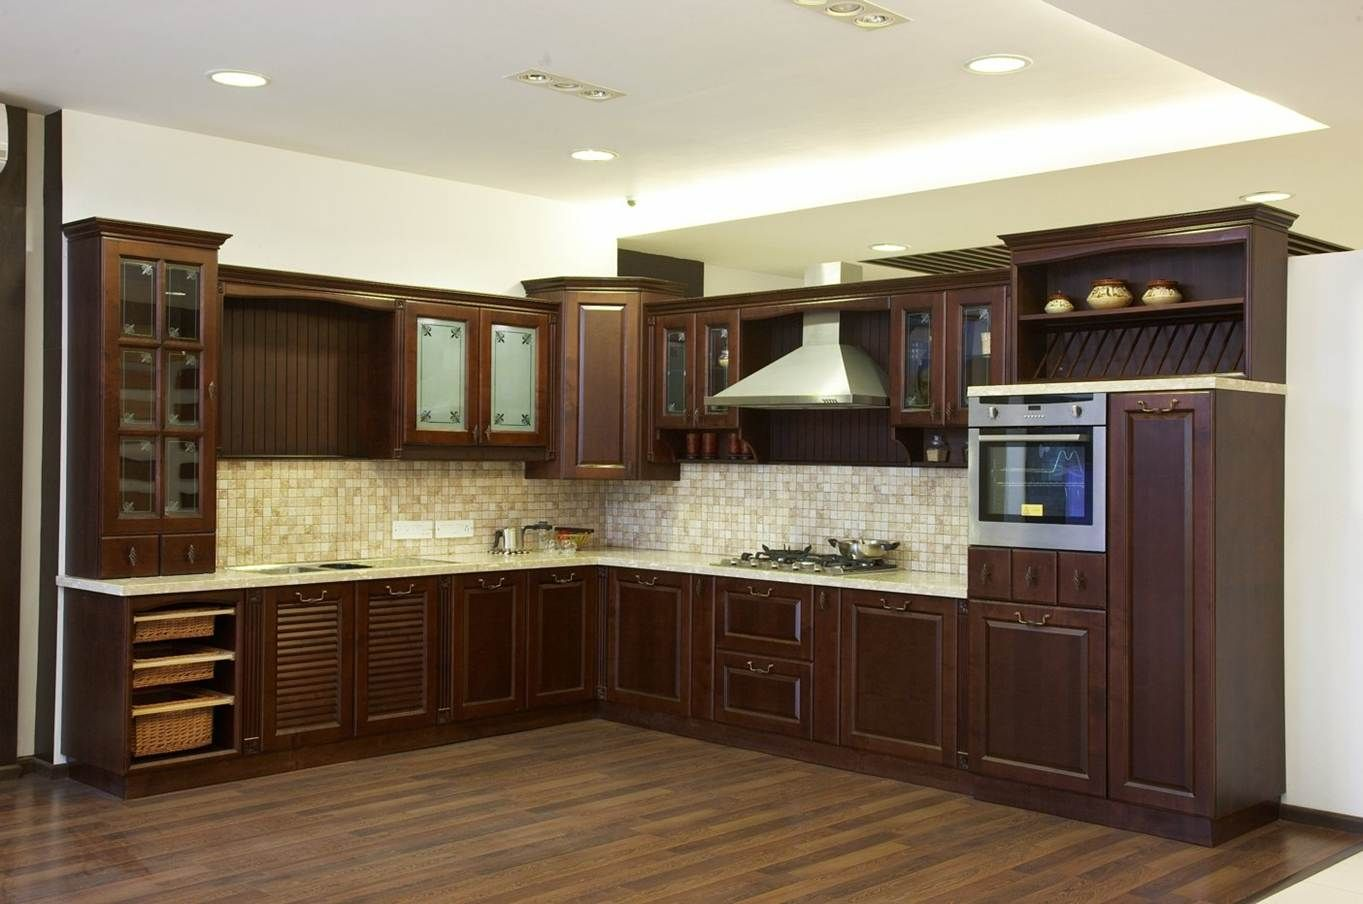 modular kitchen with solid wood finish classic traditional design rh pinterest com